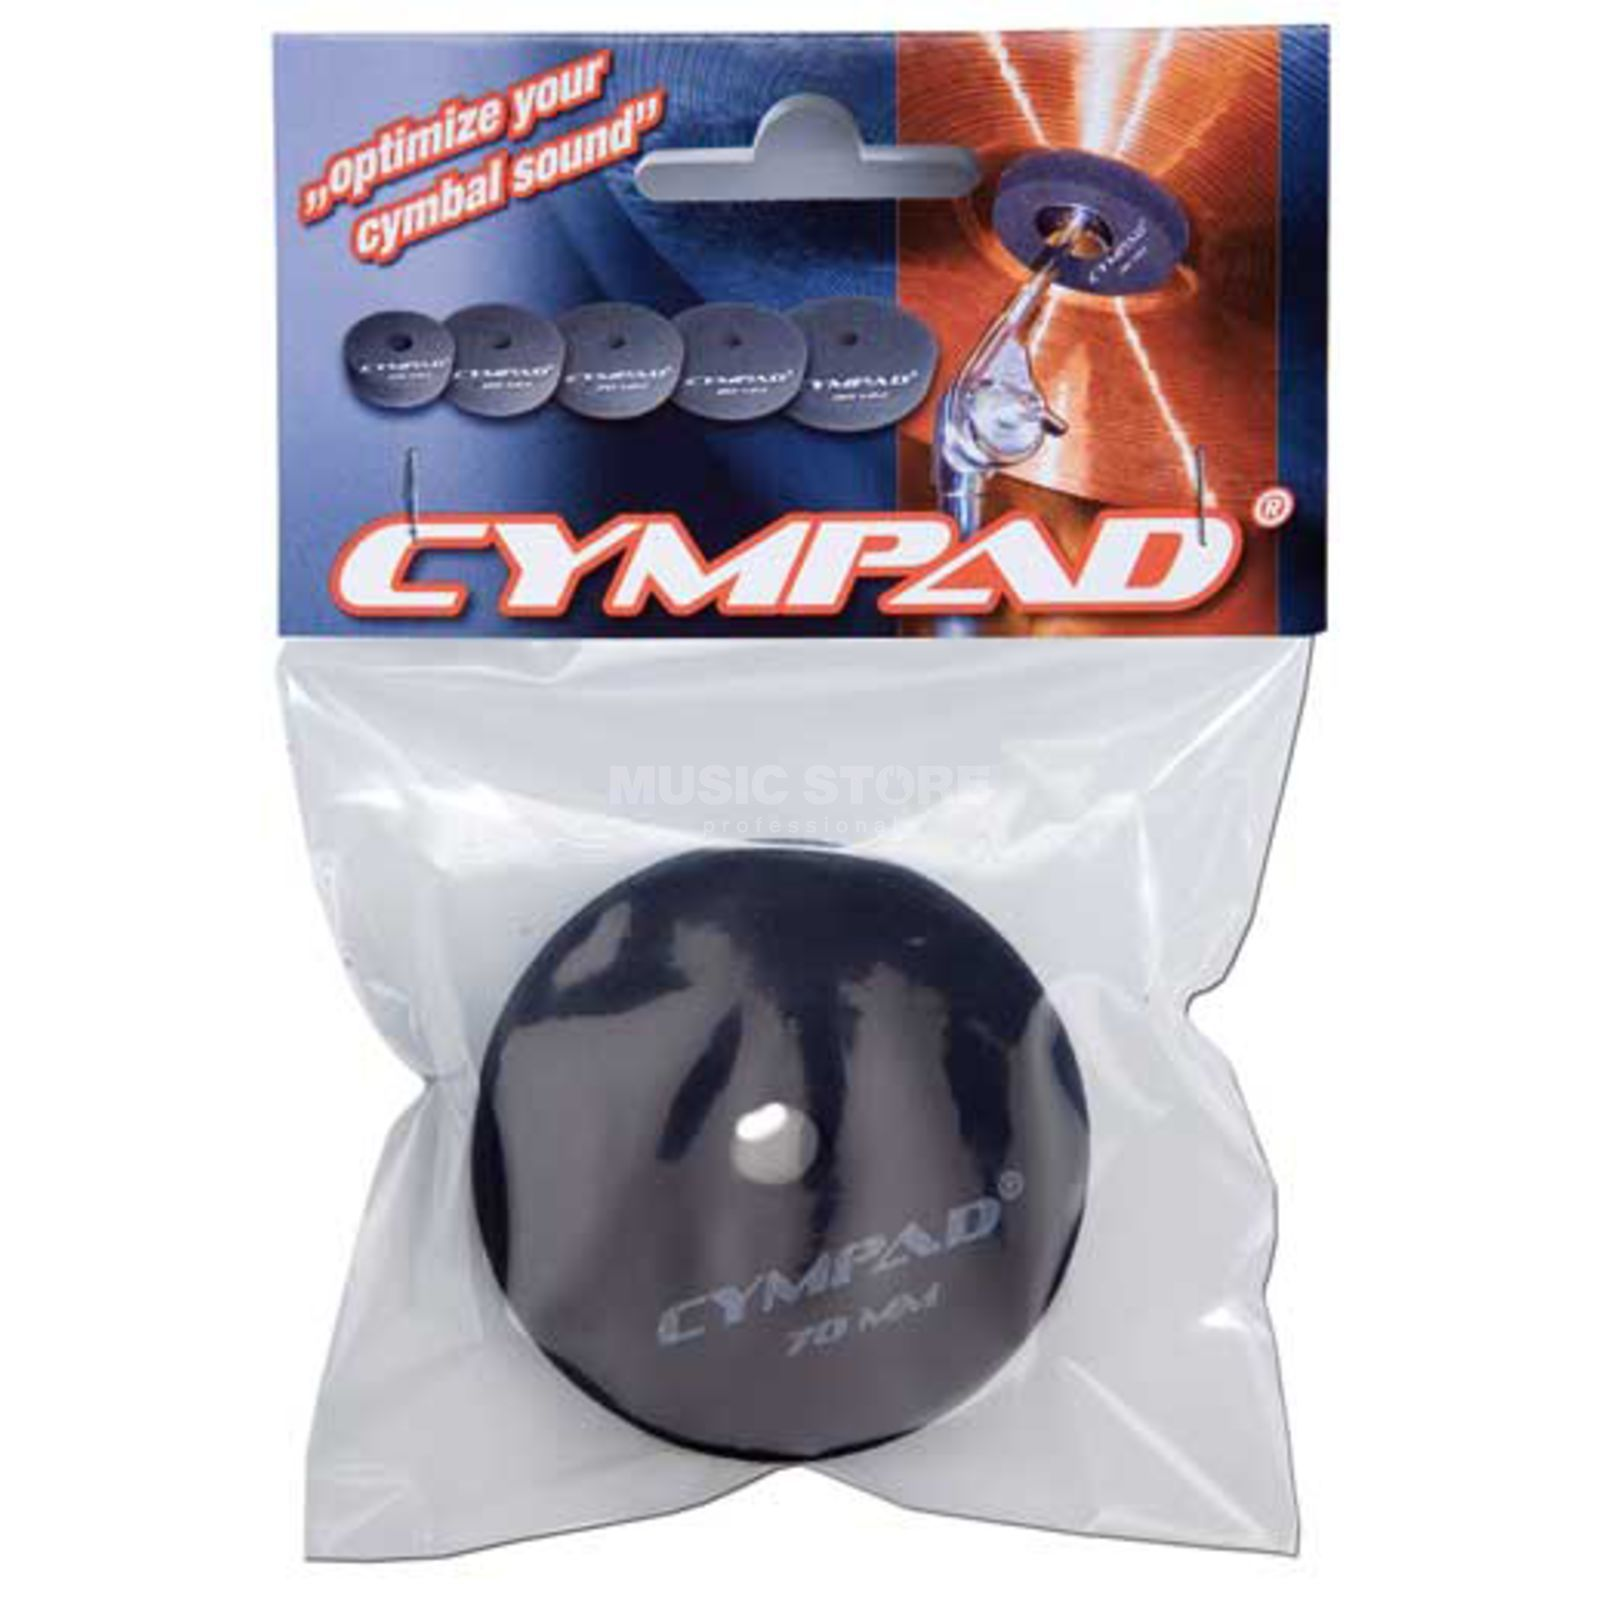 Cympad Cymbal felts, 70mm, 2 pcs Product Image